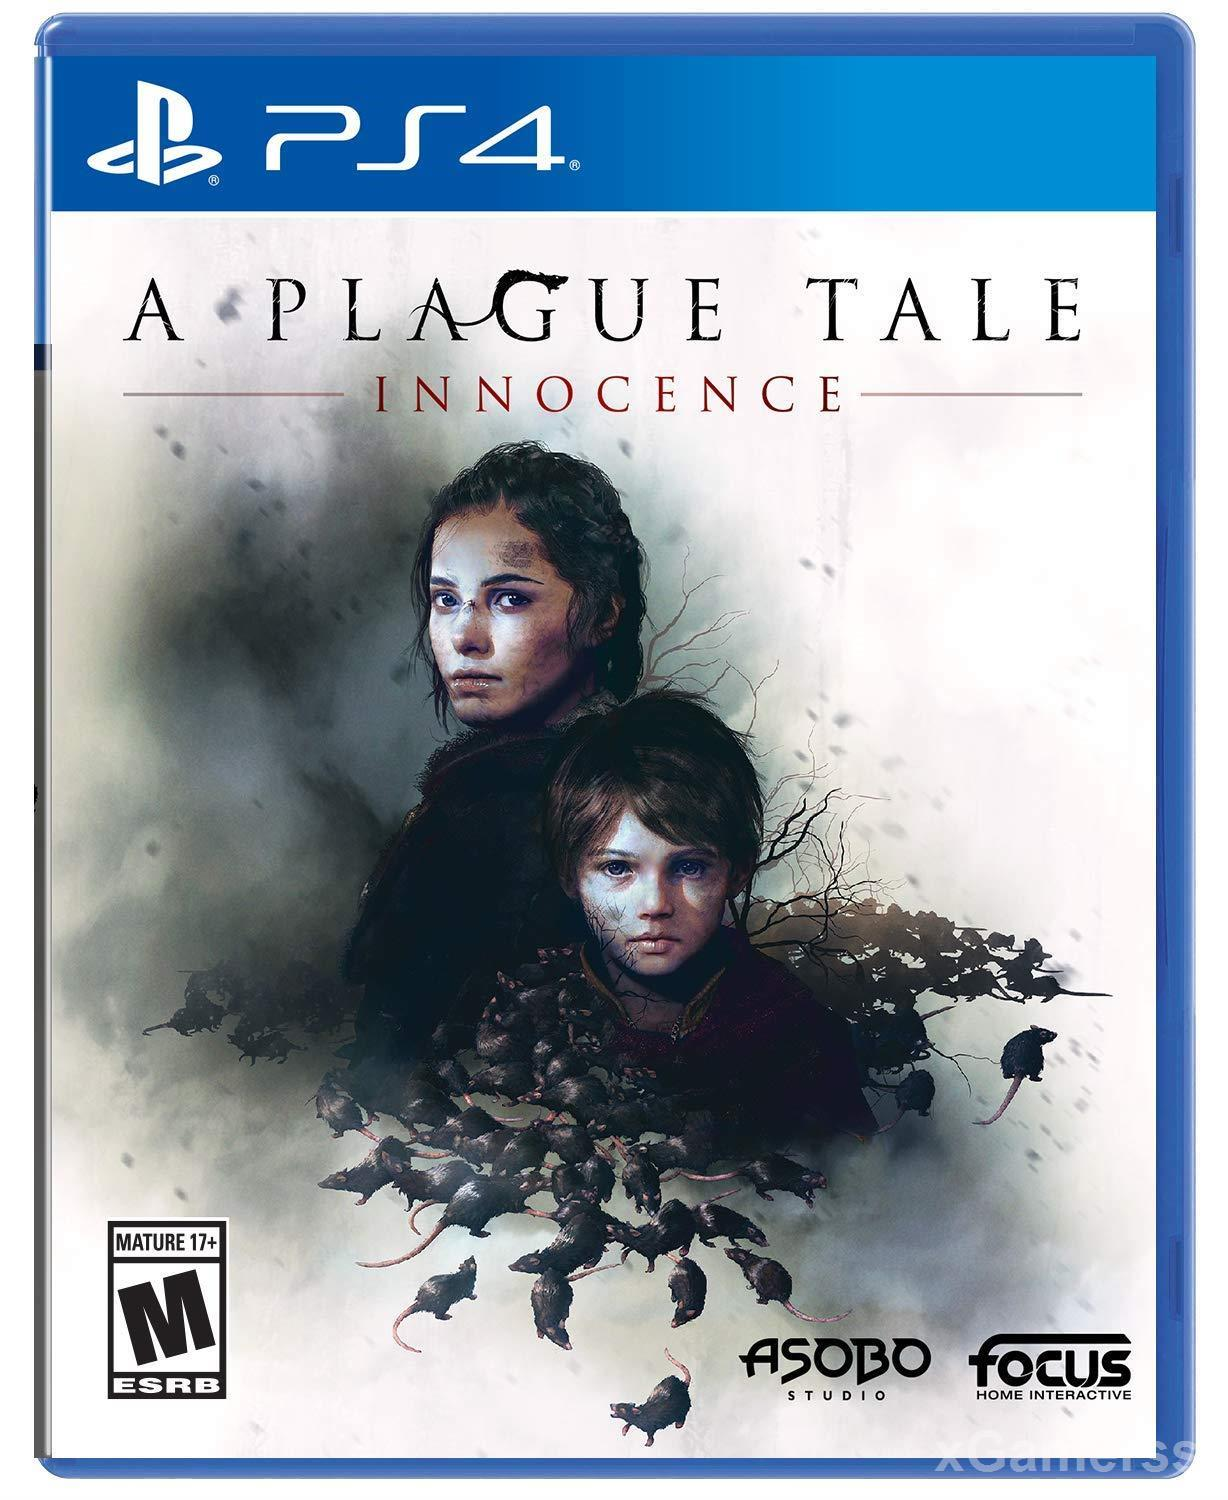 A Plague Tale: Innocence - game is set in the 14th century France. great adventure with a very moving story